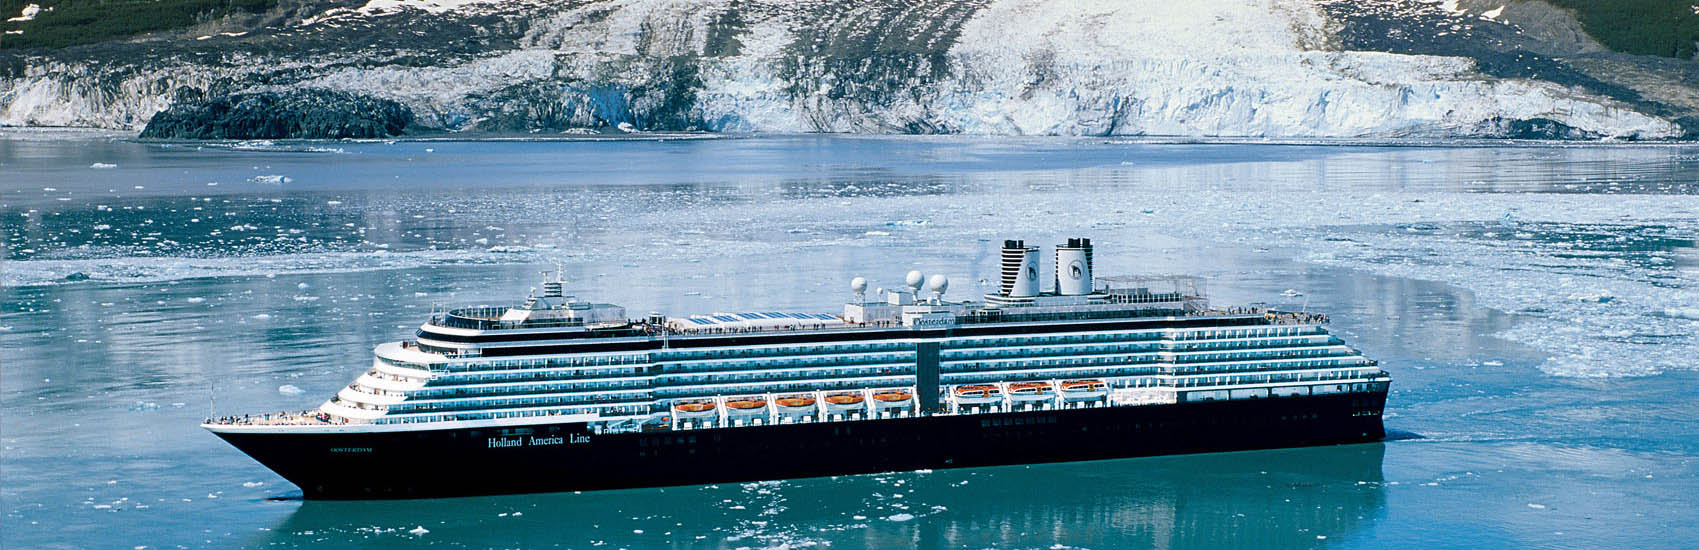 Pack These Values with Holland America Line 1